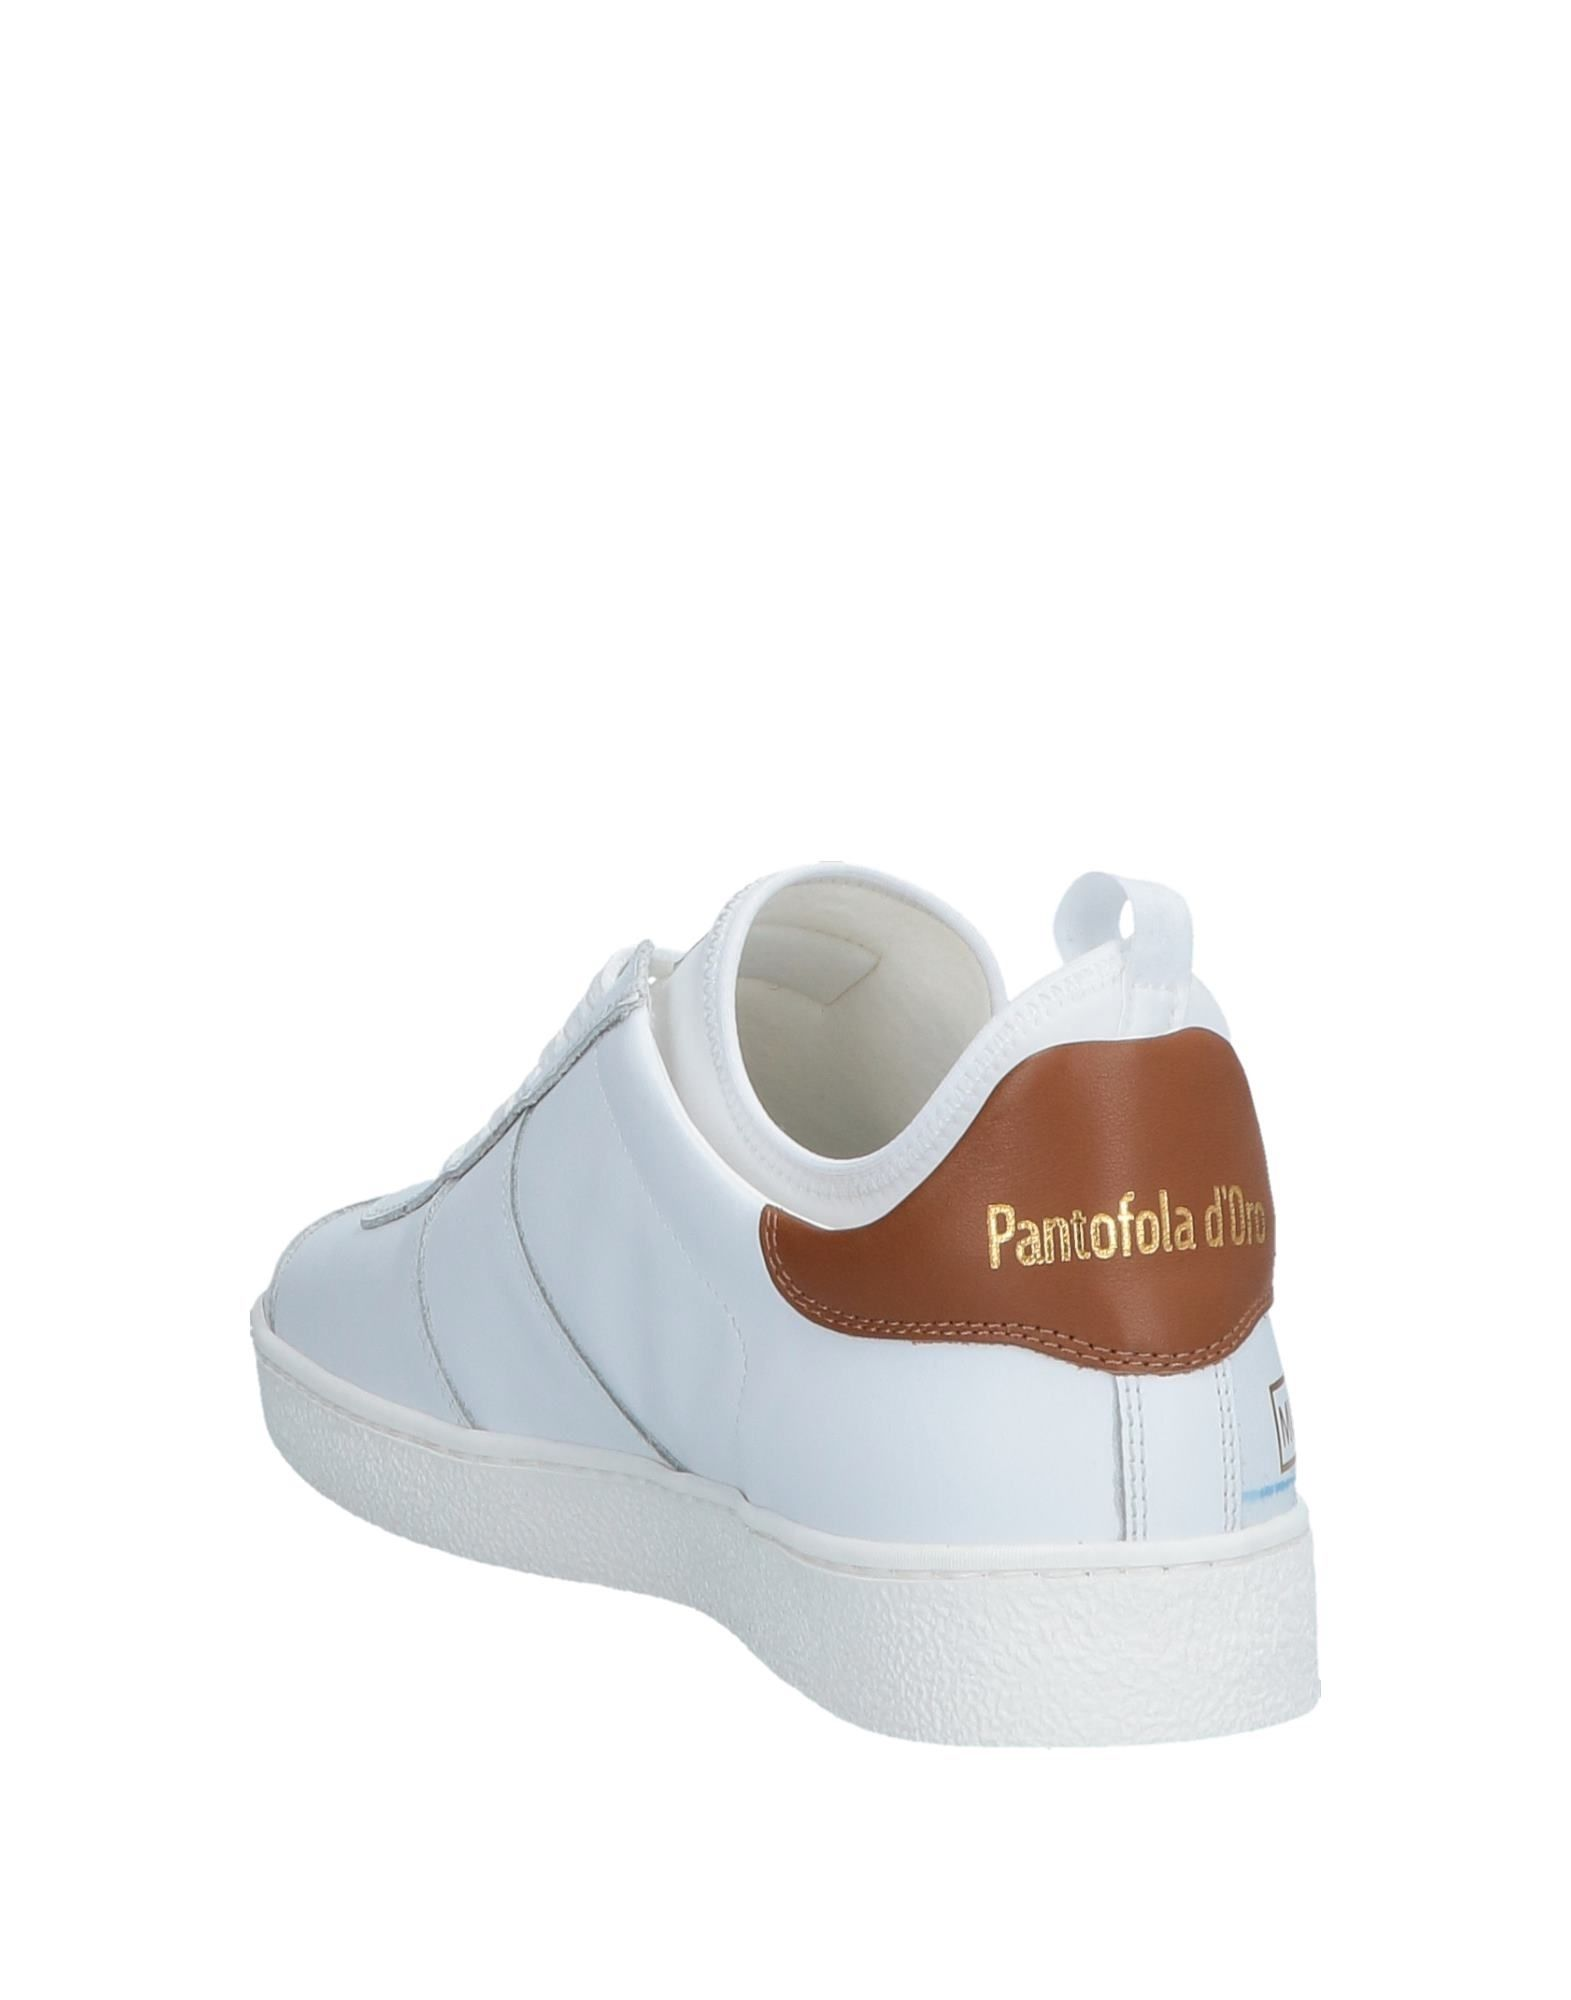 Pantofola D'oro Sneakers - Men Pantofola D'oro Sneakers online on on on  United Kingdom - 11569842LD 2d3428